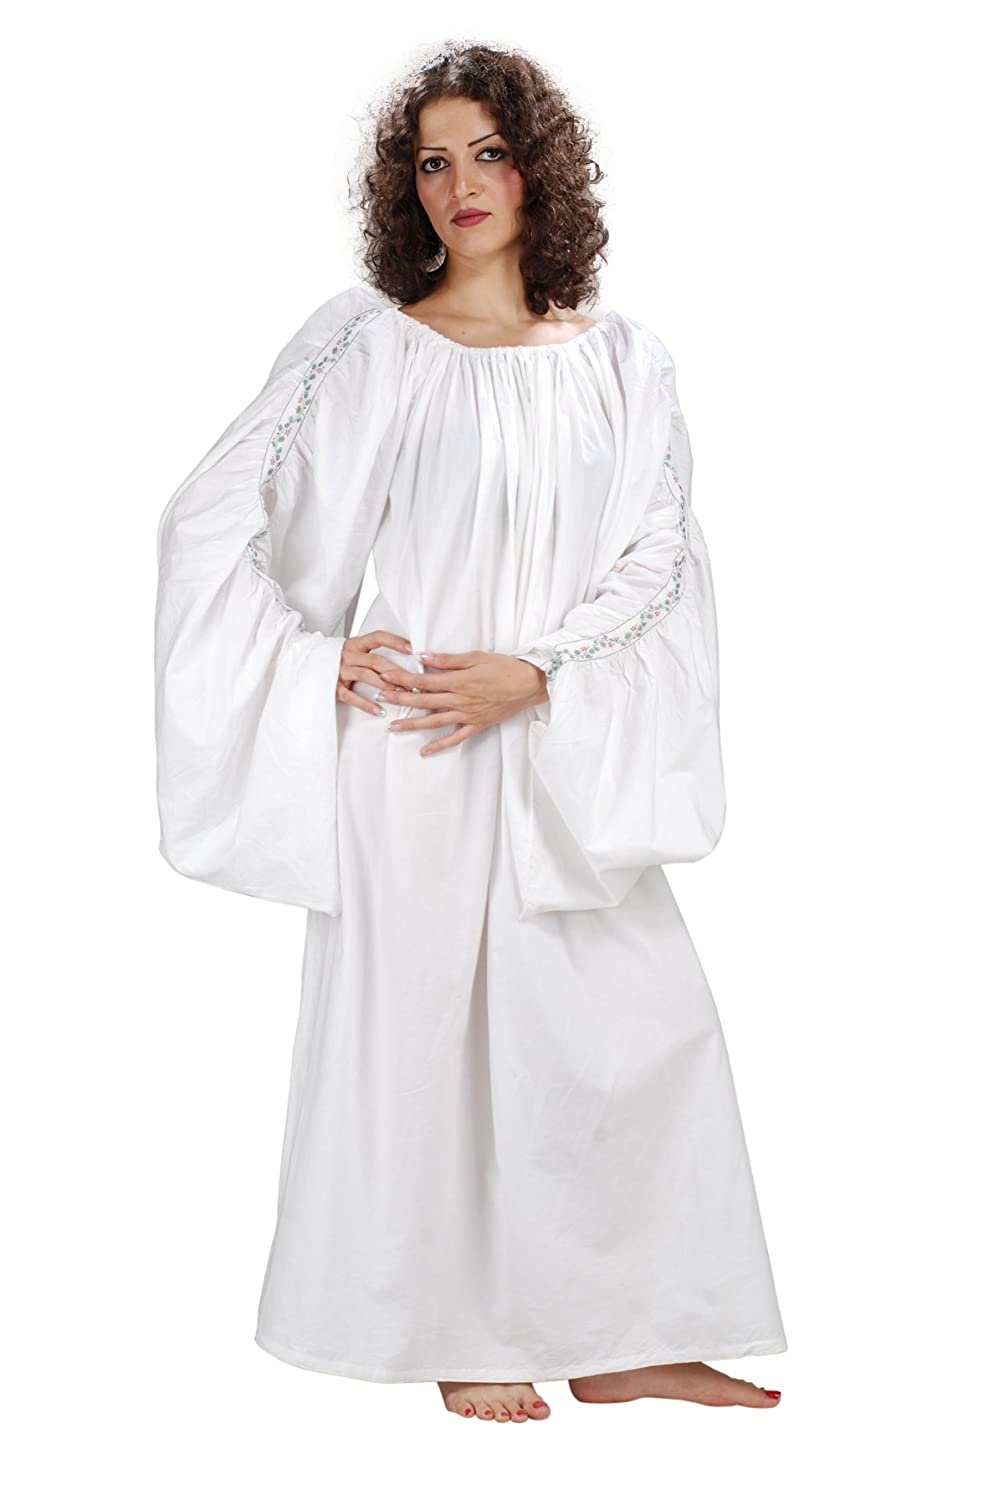 Celtic Decorated Trim Long White Chemise (One Size) - DeluxeAdultCostumes.com